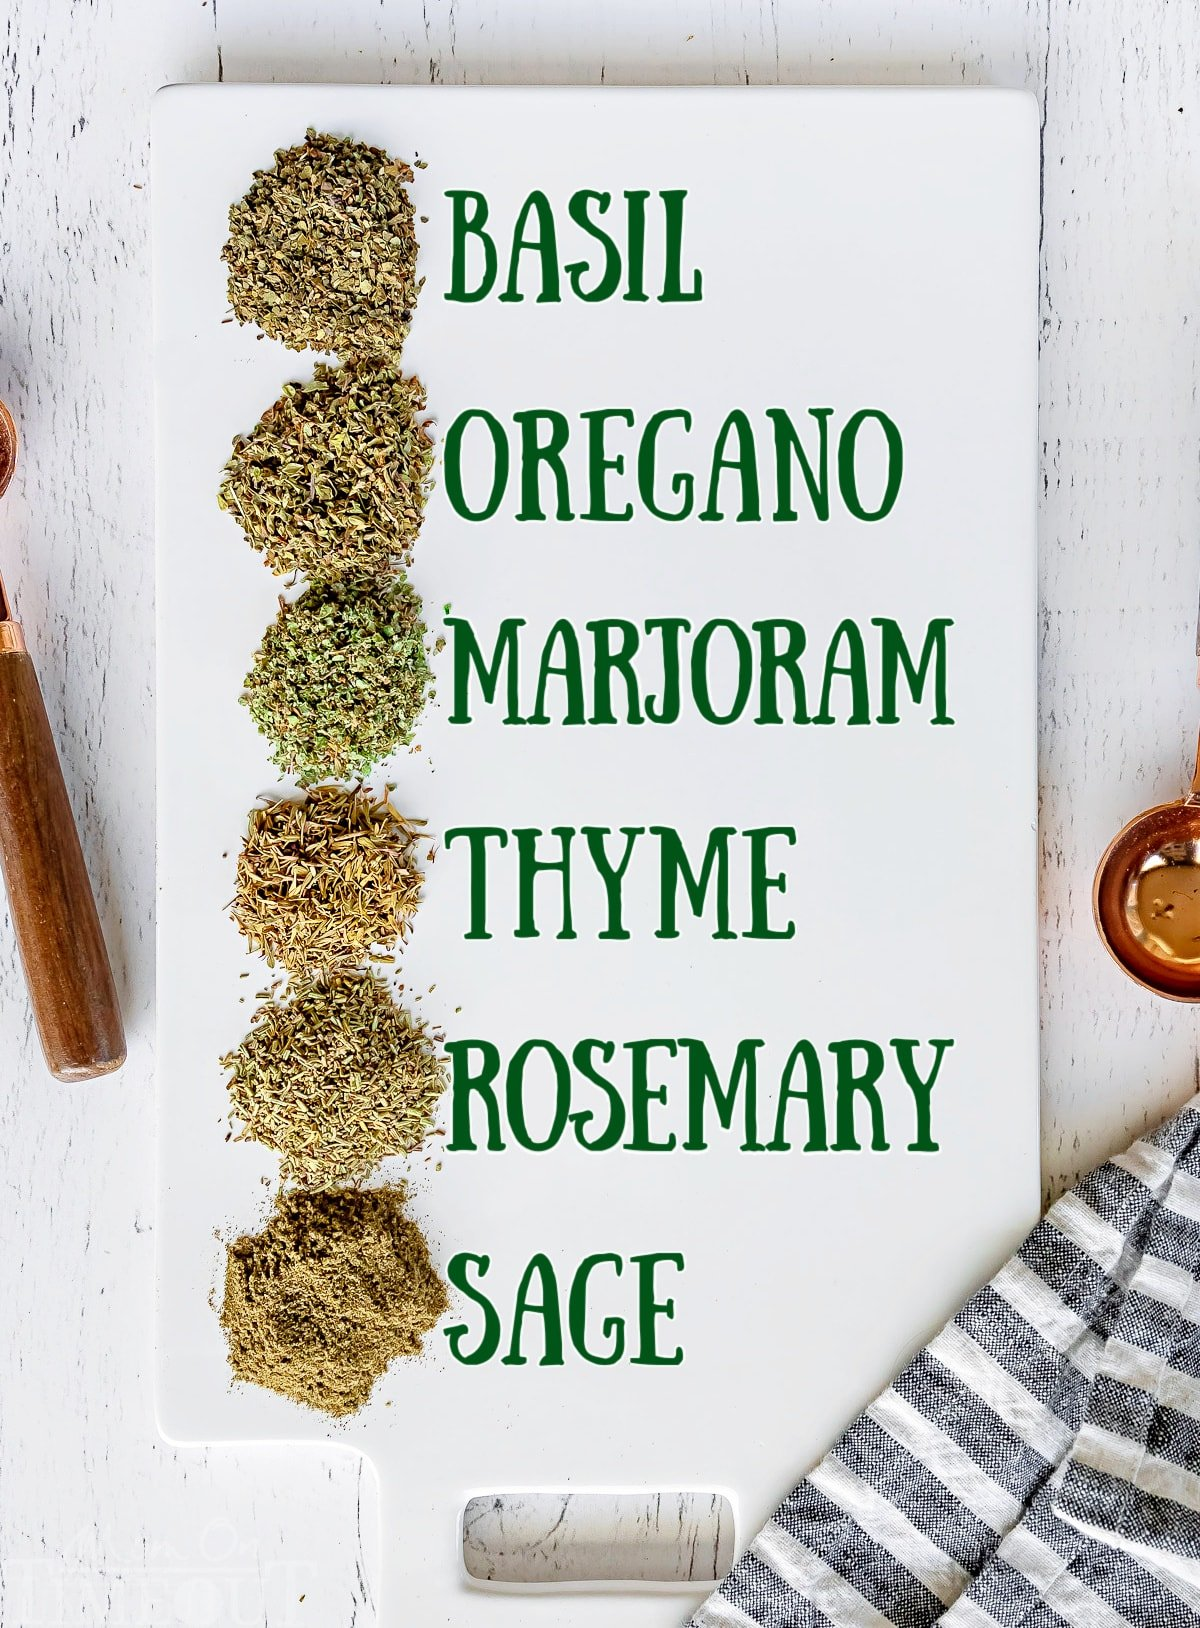 italian seasoning ingredients measured out on white cutting board with labels to the side.